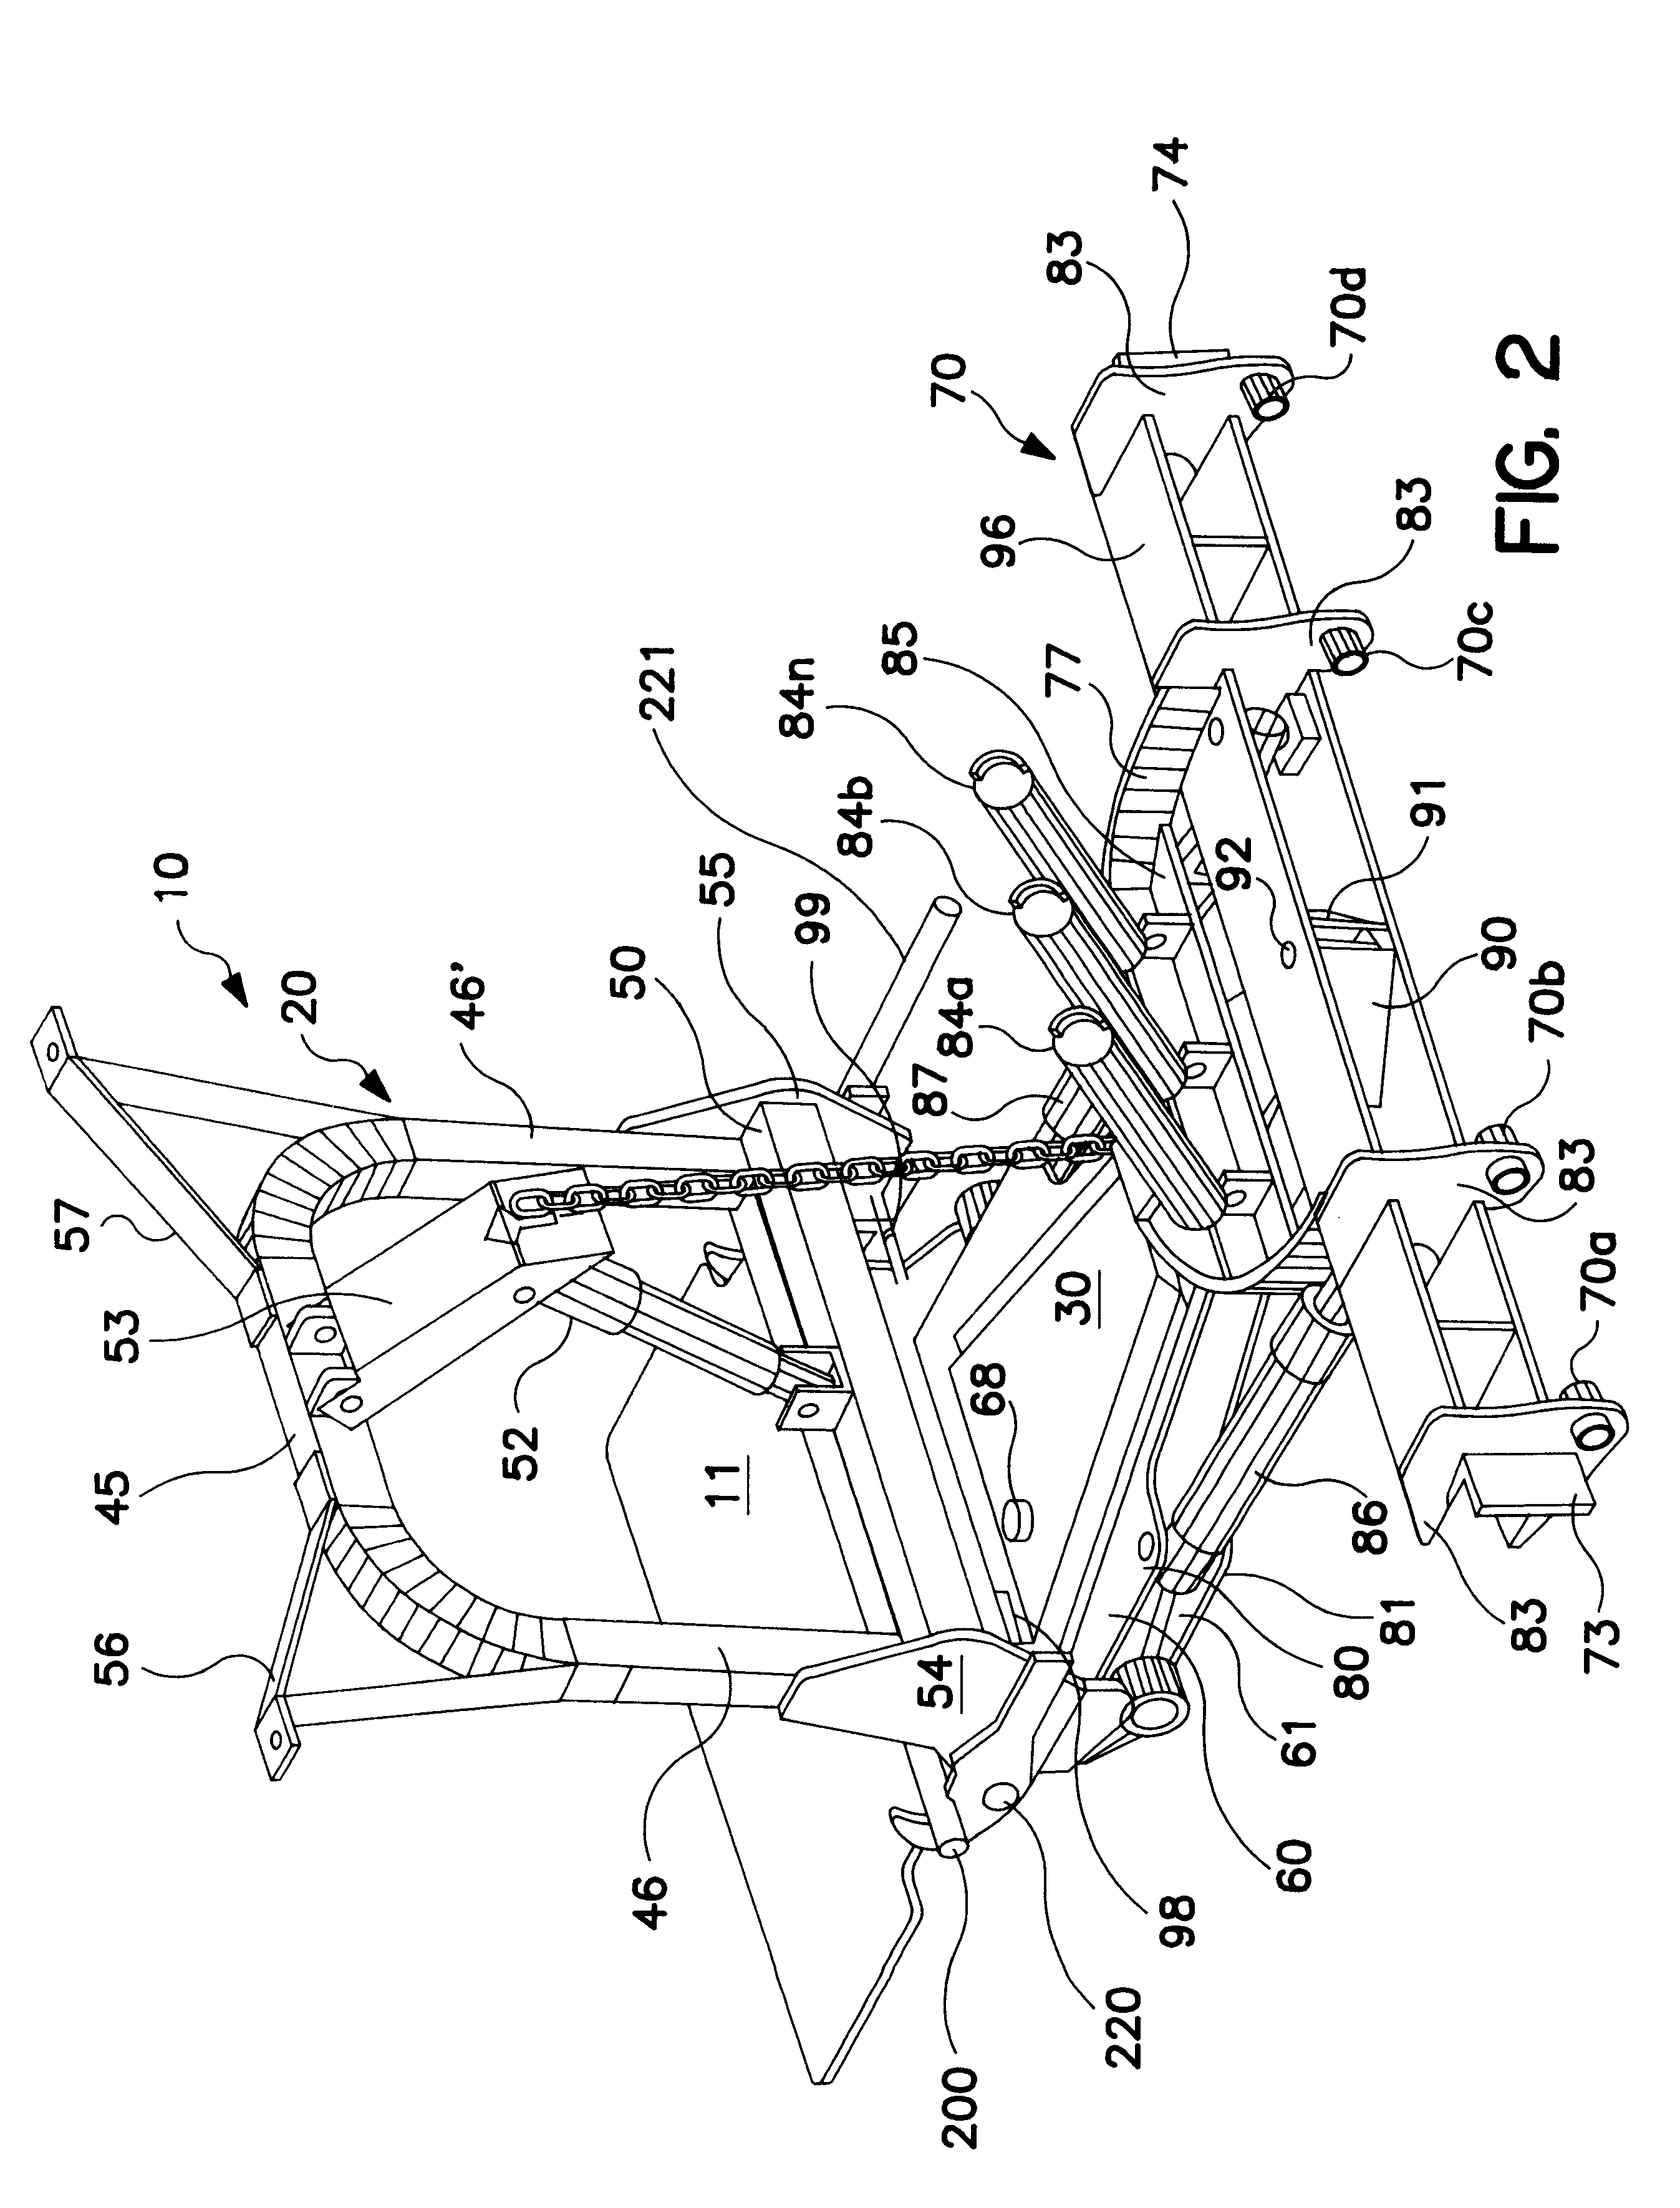 Snow Plow Parts Meyer Wiring Diagram further 281620754343 additionally Plowpins additionally 17000 Meyer Conventional 72 86 Jeep Cj Scrambler Snow Plow Mount Custom also Meyer Ez Mount Plow Wiring Diagram. on fisher snow plow frame mount